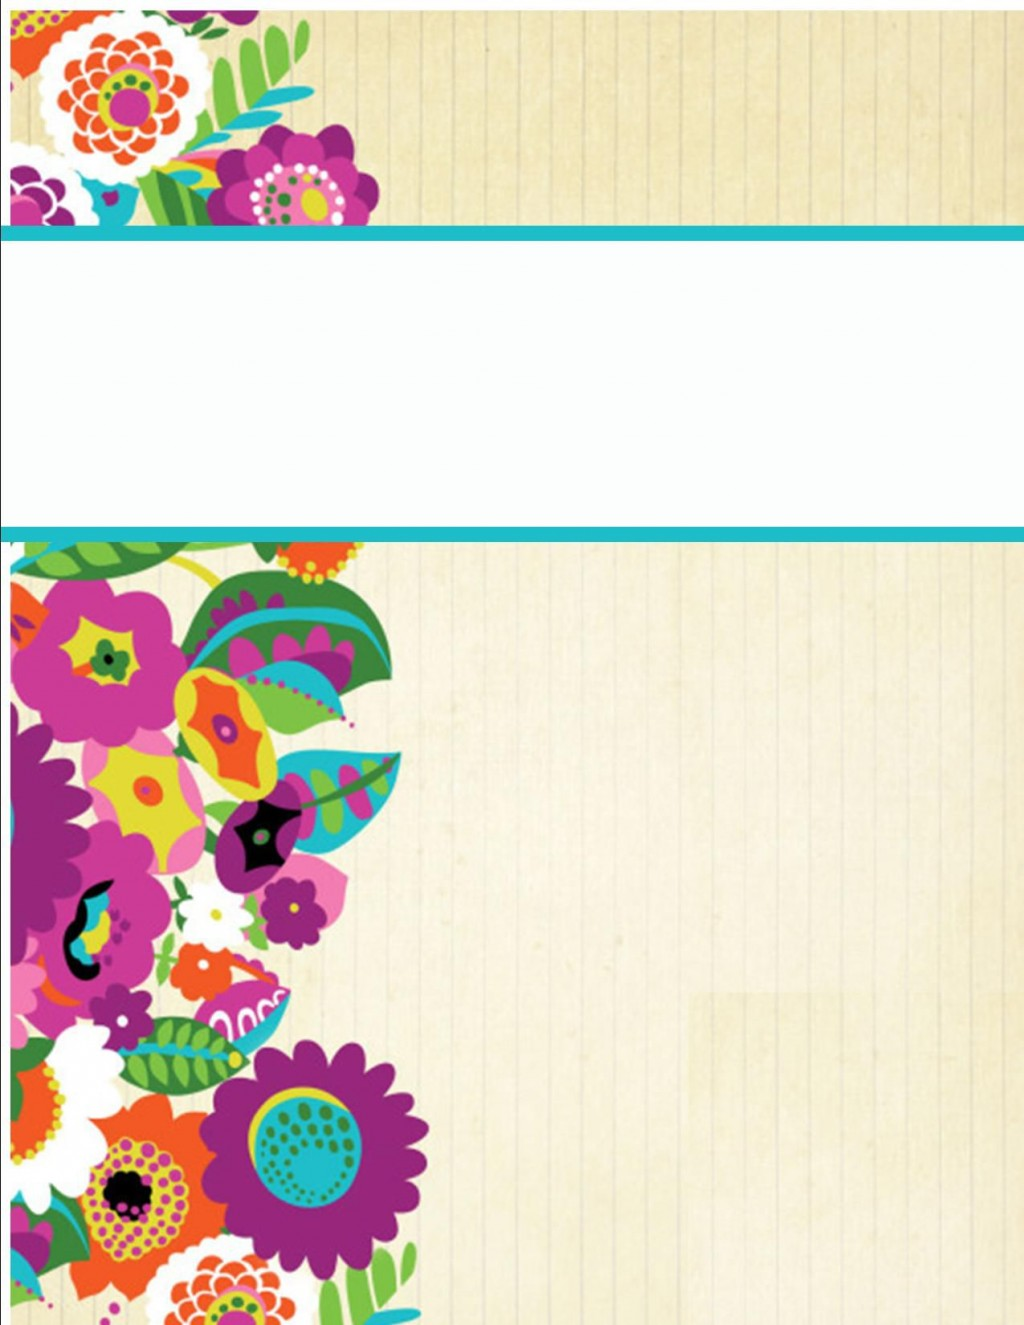 002 Formidable Cute Binder Cover Template Free Printable Image Large